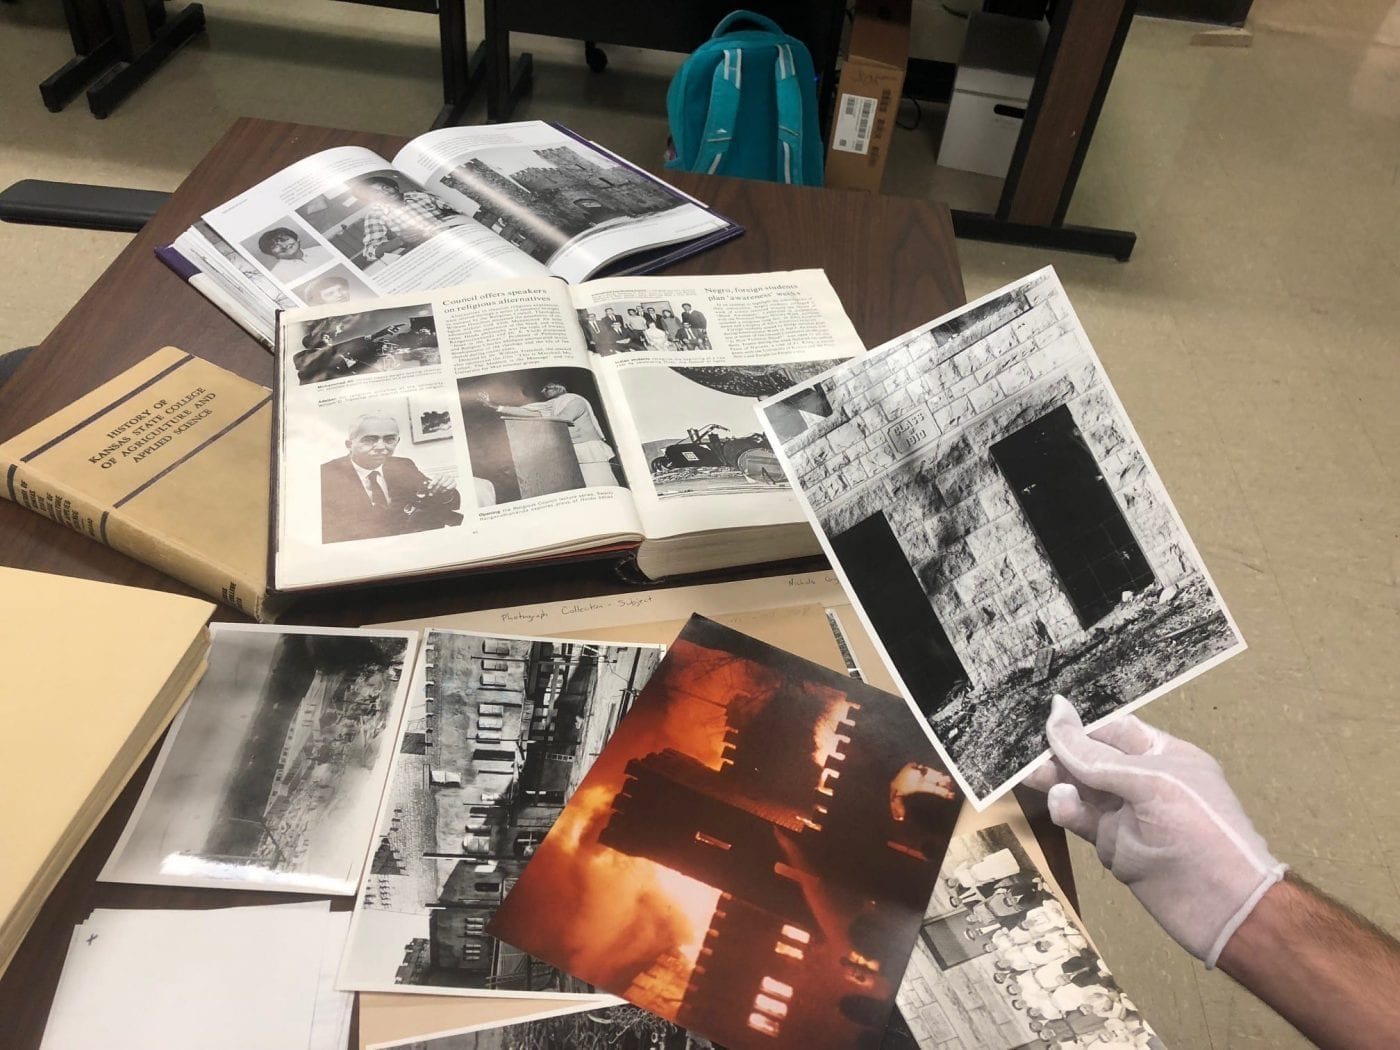 Multiple open books and large photographs in both color and black and white are spread across a long table.